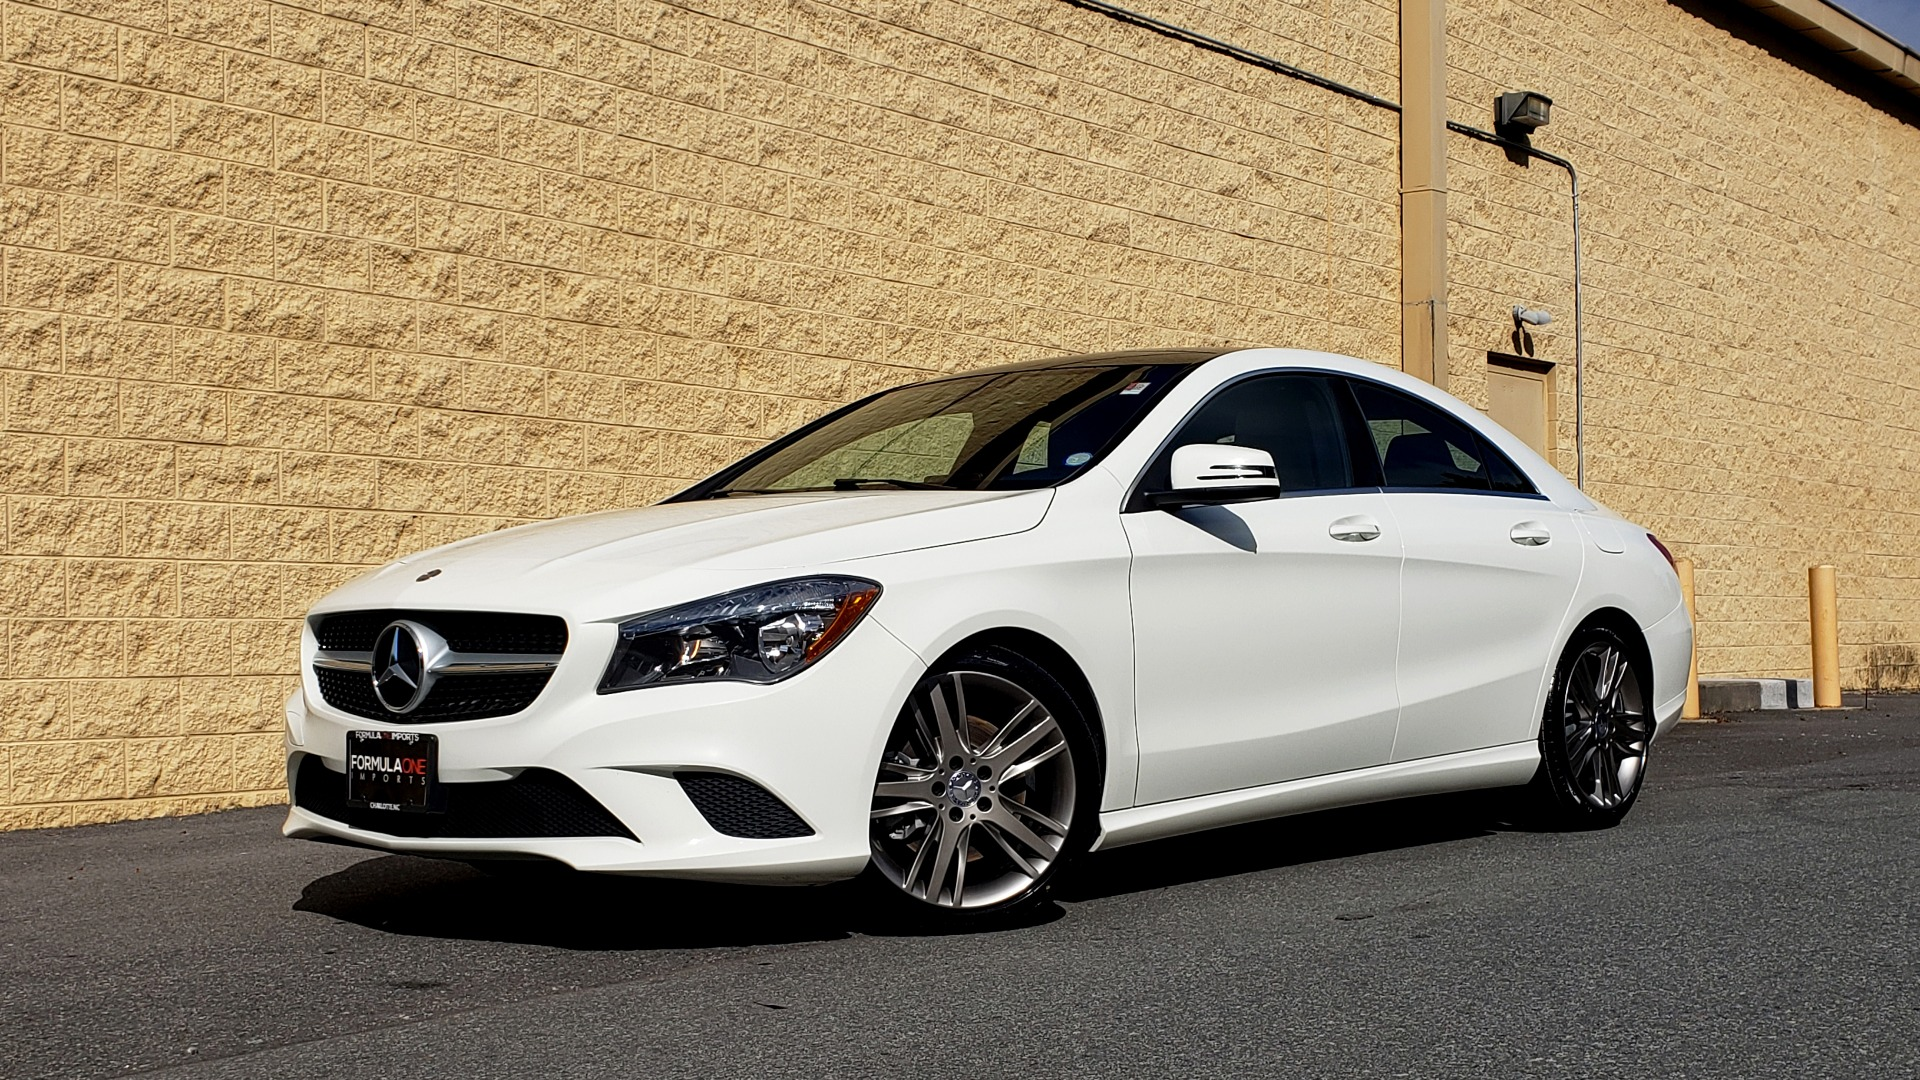 Used 2015 Mercedes-Benz CLA-Class CLA250 / FWD / SUNROOF / SPORT SUSP / CAMERA for sale Sold at Formula One Imports in Charlotte NC 28227 1